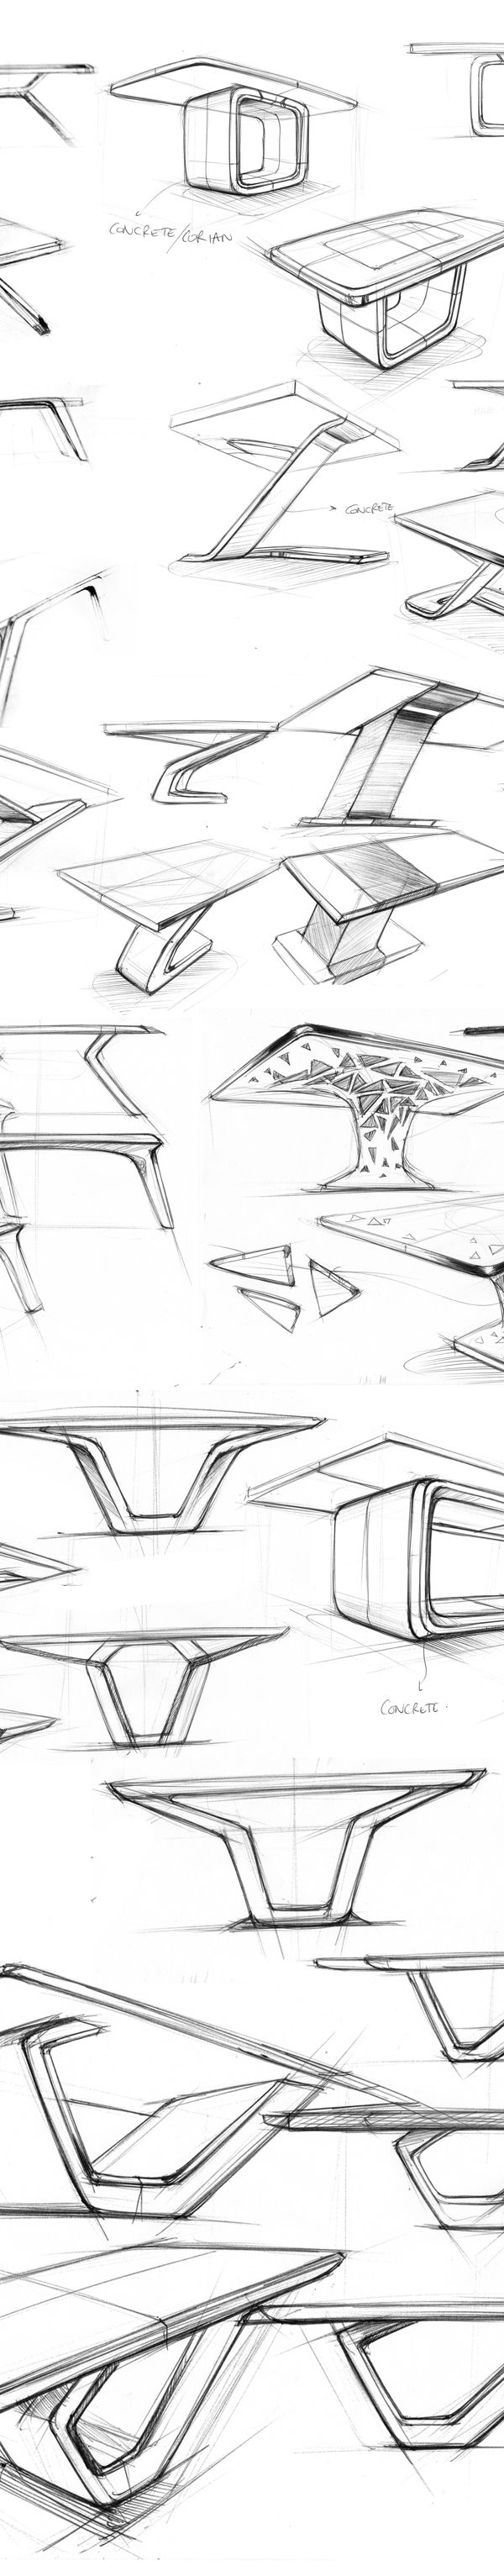 MARBLE TABLE SKETCHES WIP - 2014 by Marc TRAN, via Behance